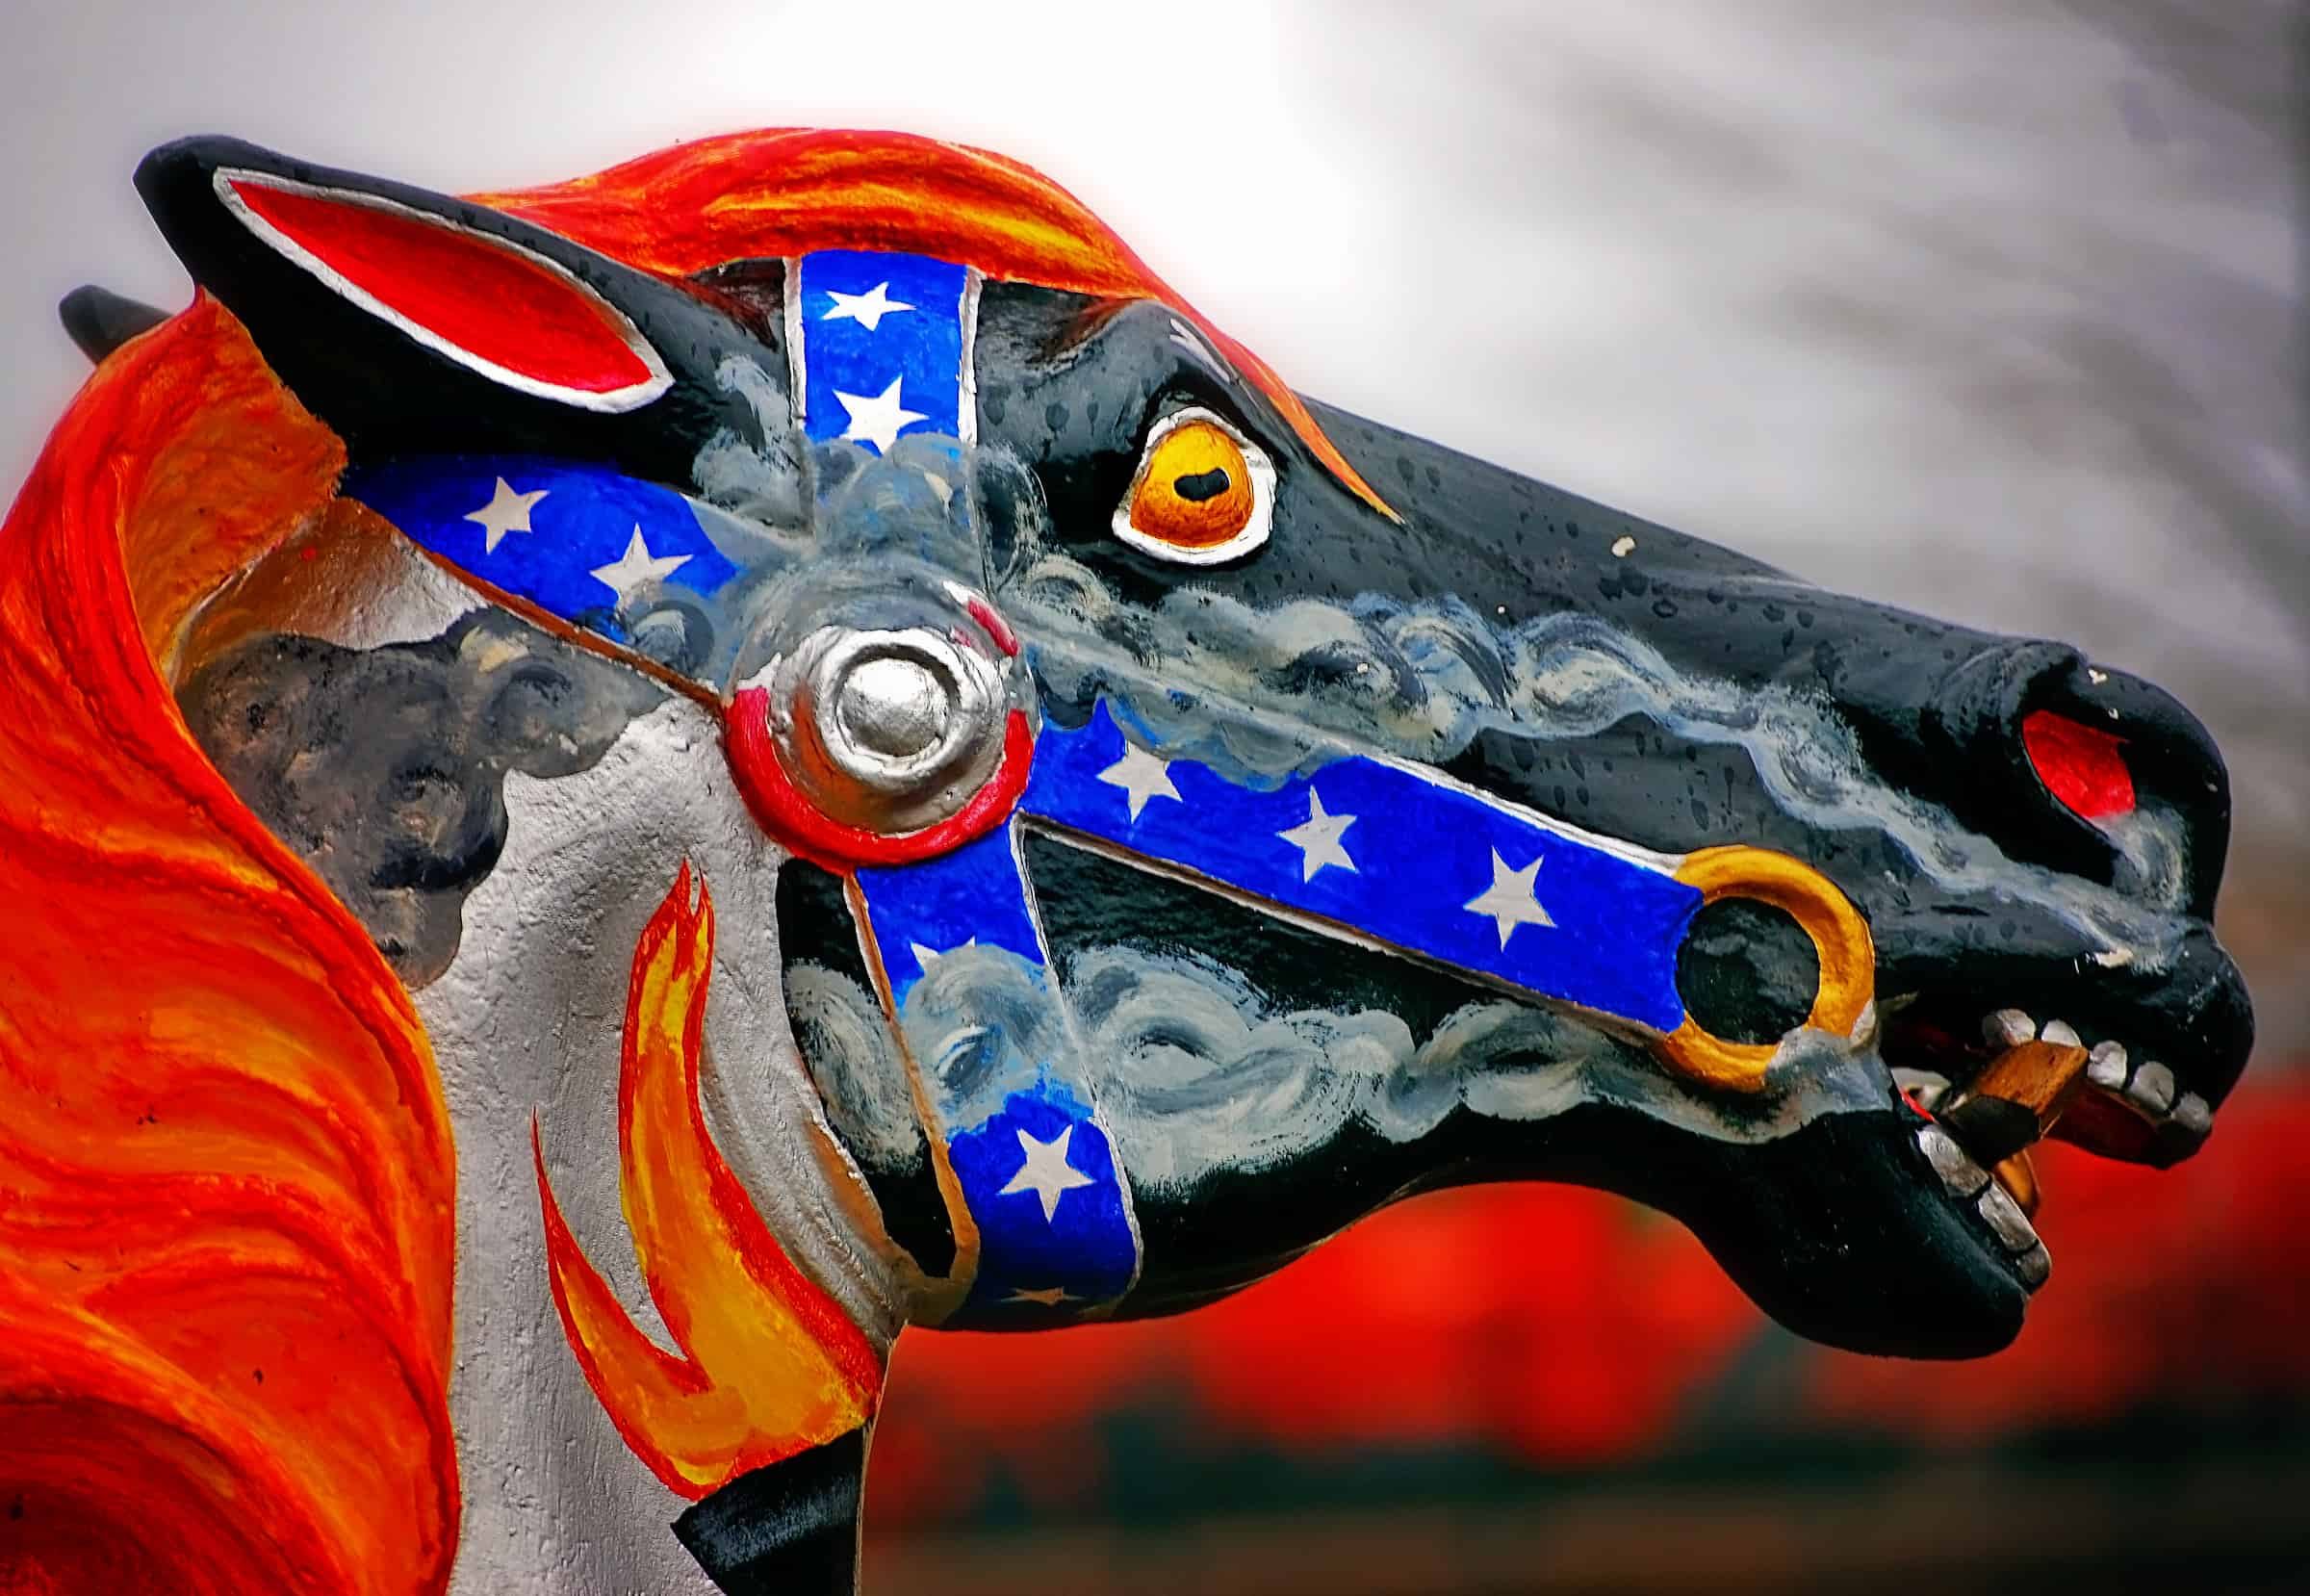 Carousel horse in Meridian, Mississippi